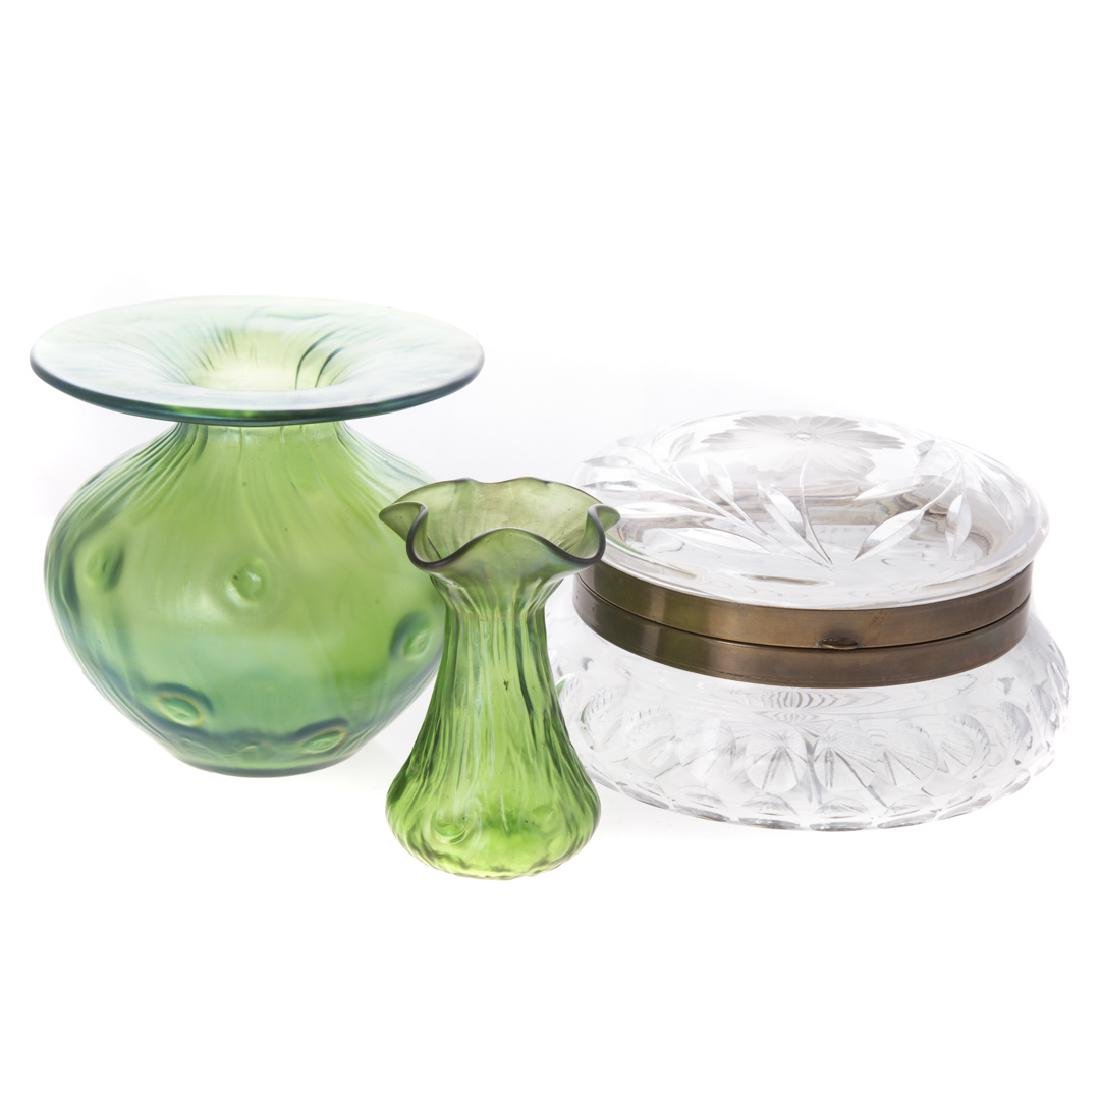 Two German emerald opalescent glass vases